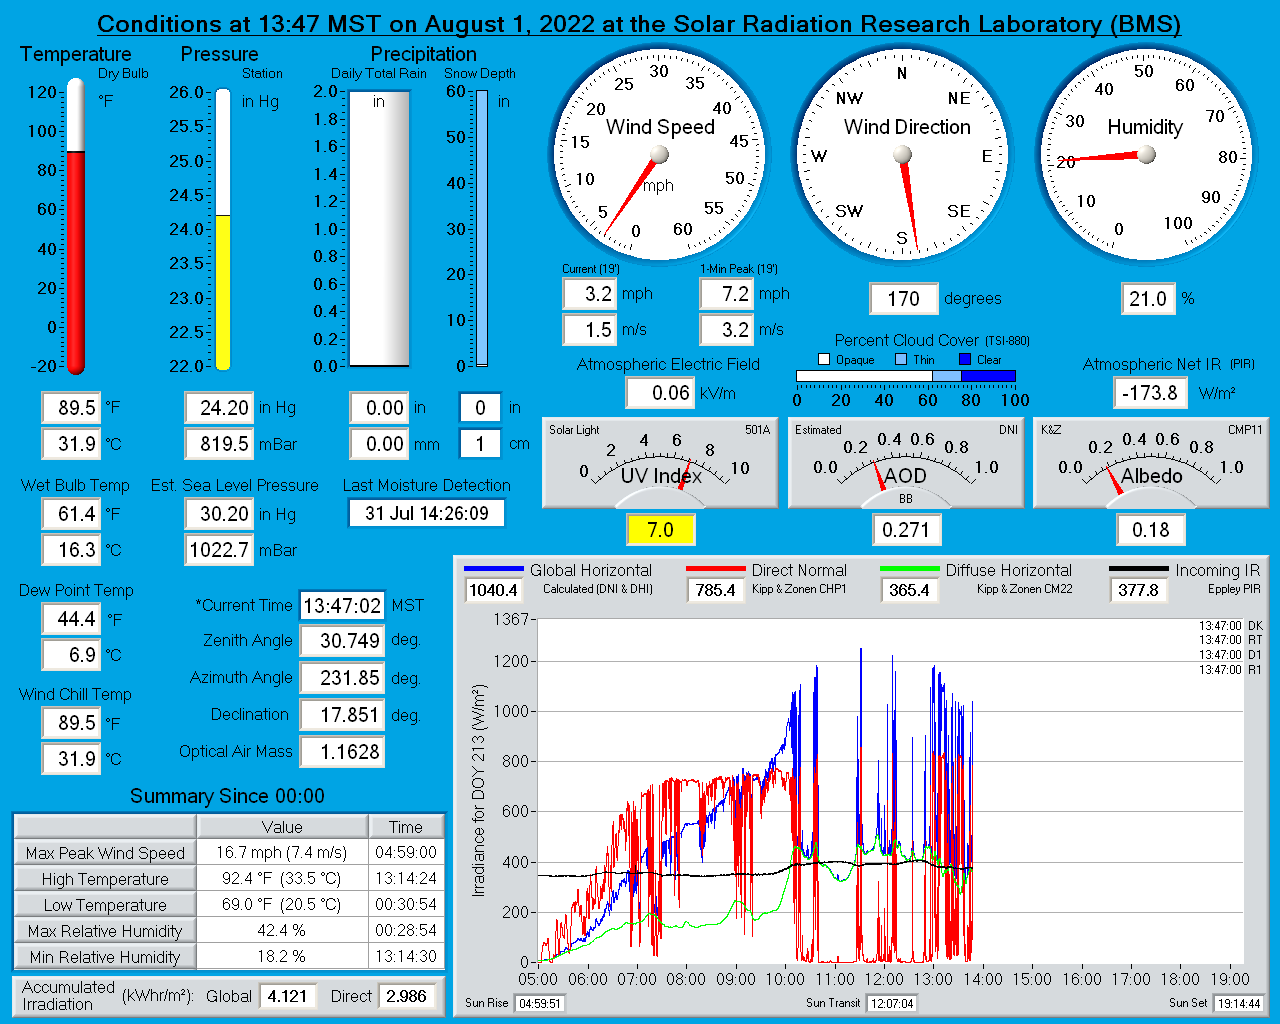 NREL Solar Radiation Research Laboratory (BMS) Real-Time Weather Display